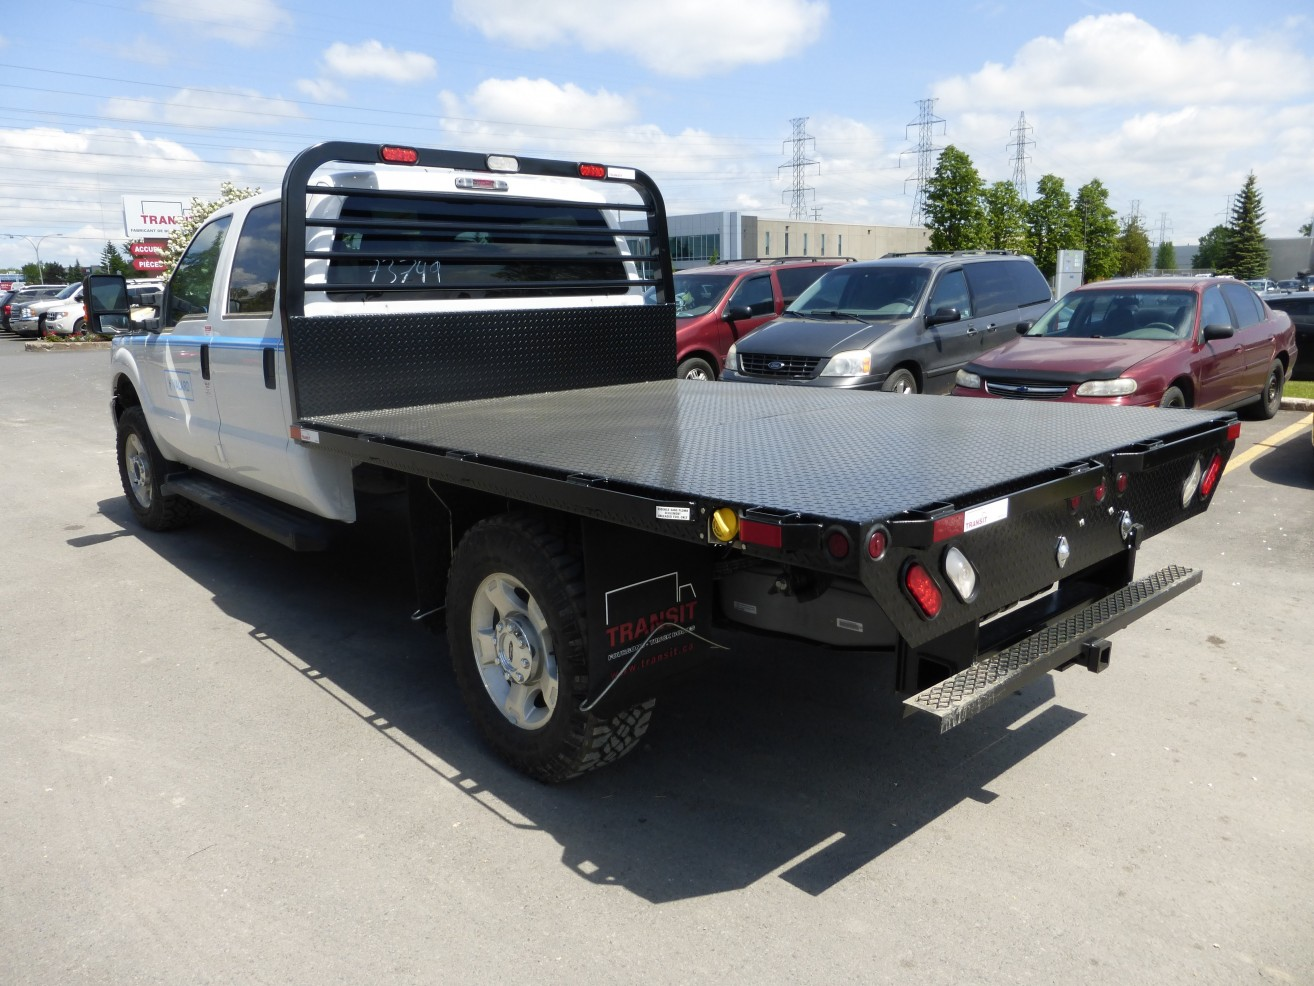 Ford Transit Cutaway >> 9' Flatbed on Ford F350 Crew Cab | Transit